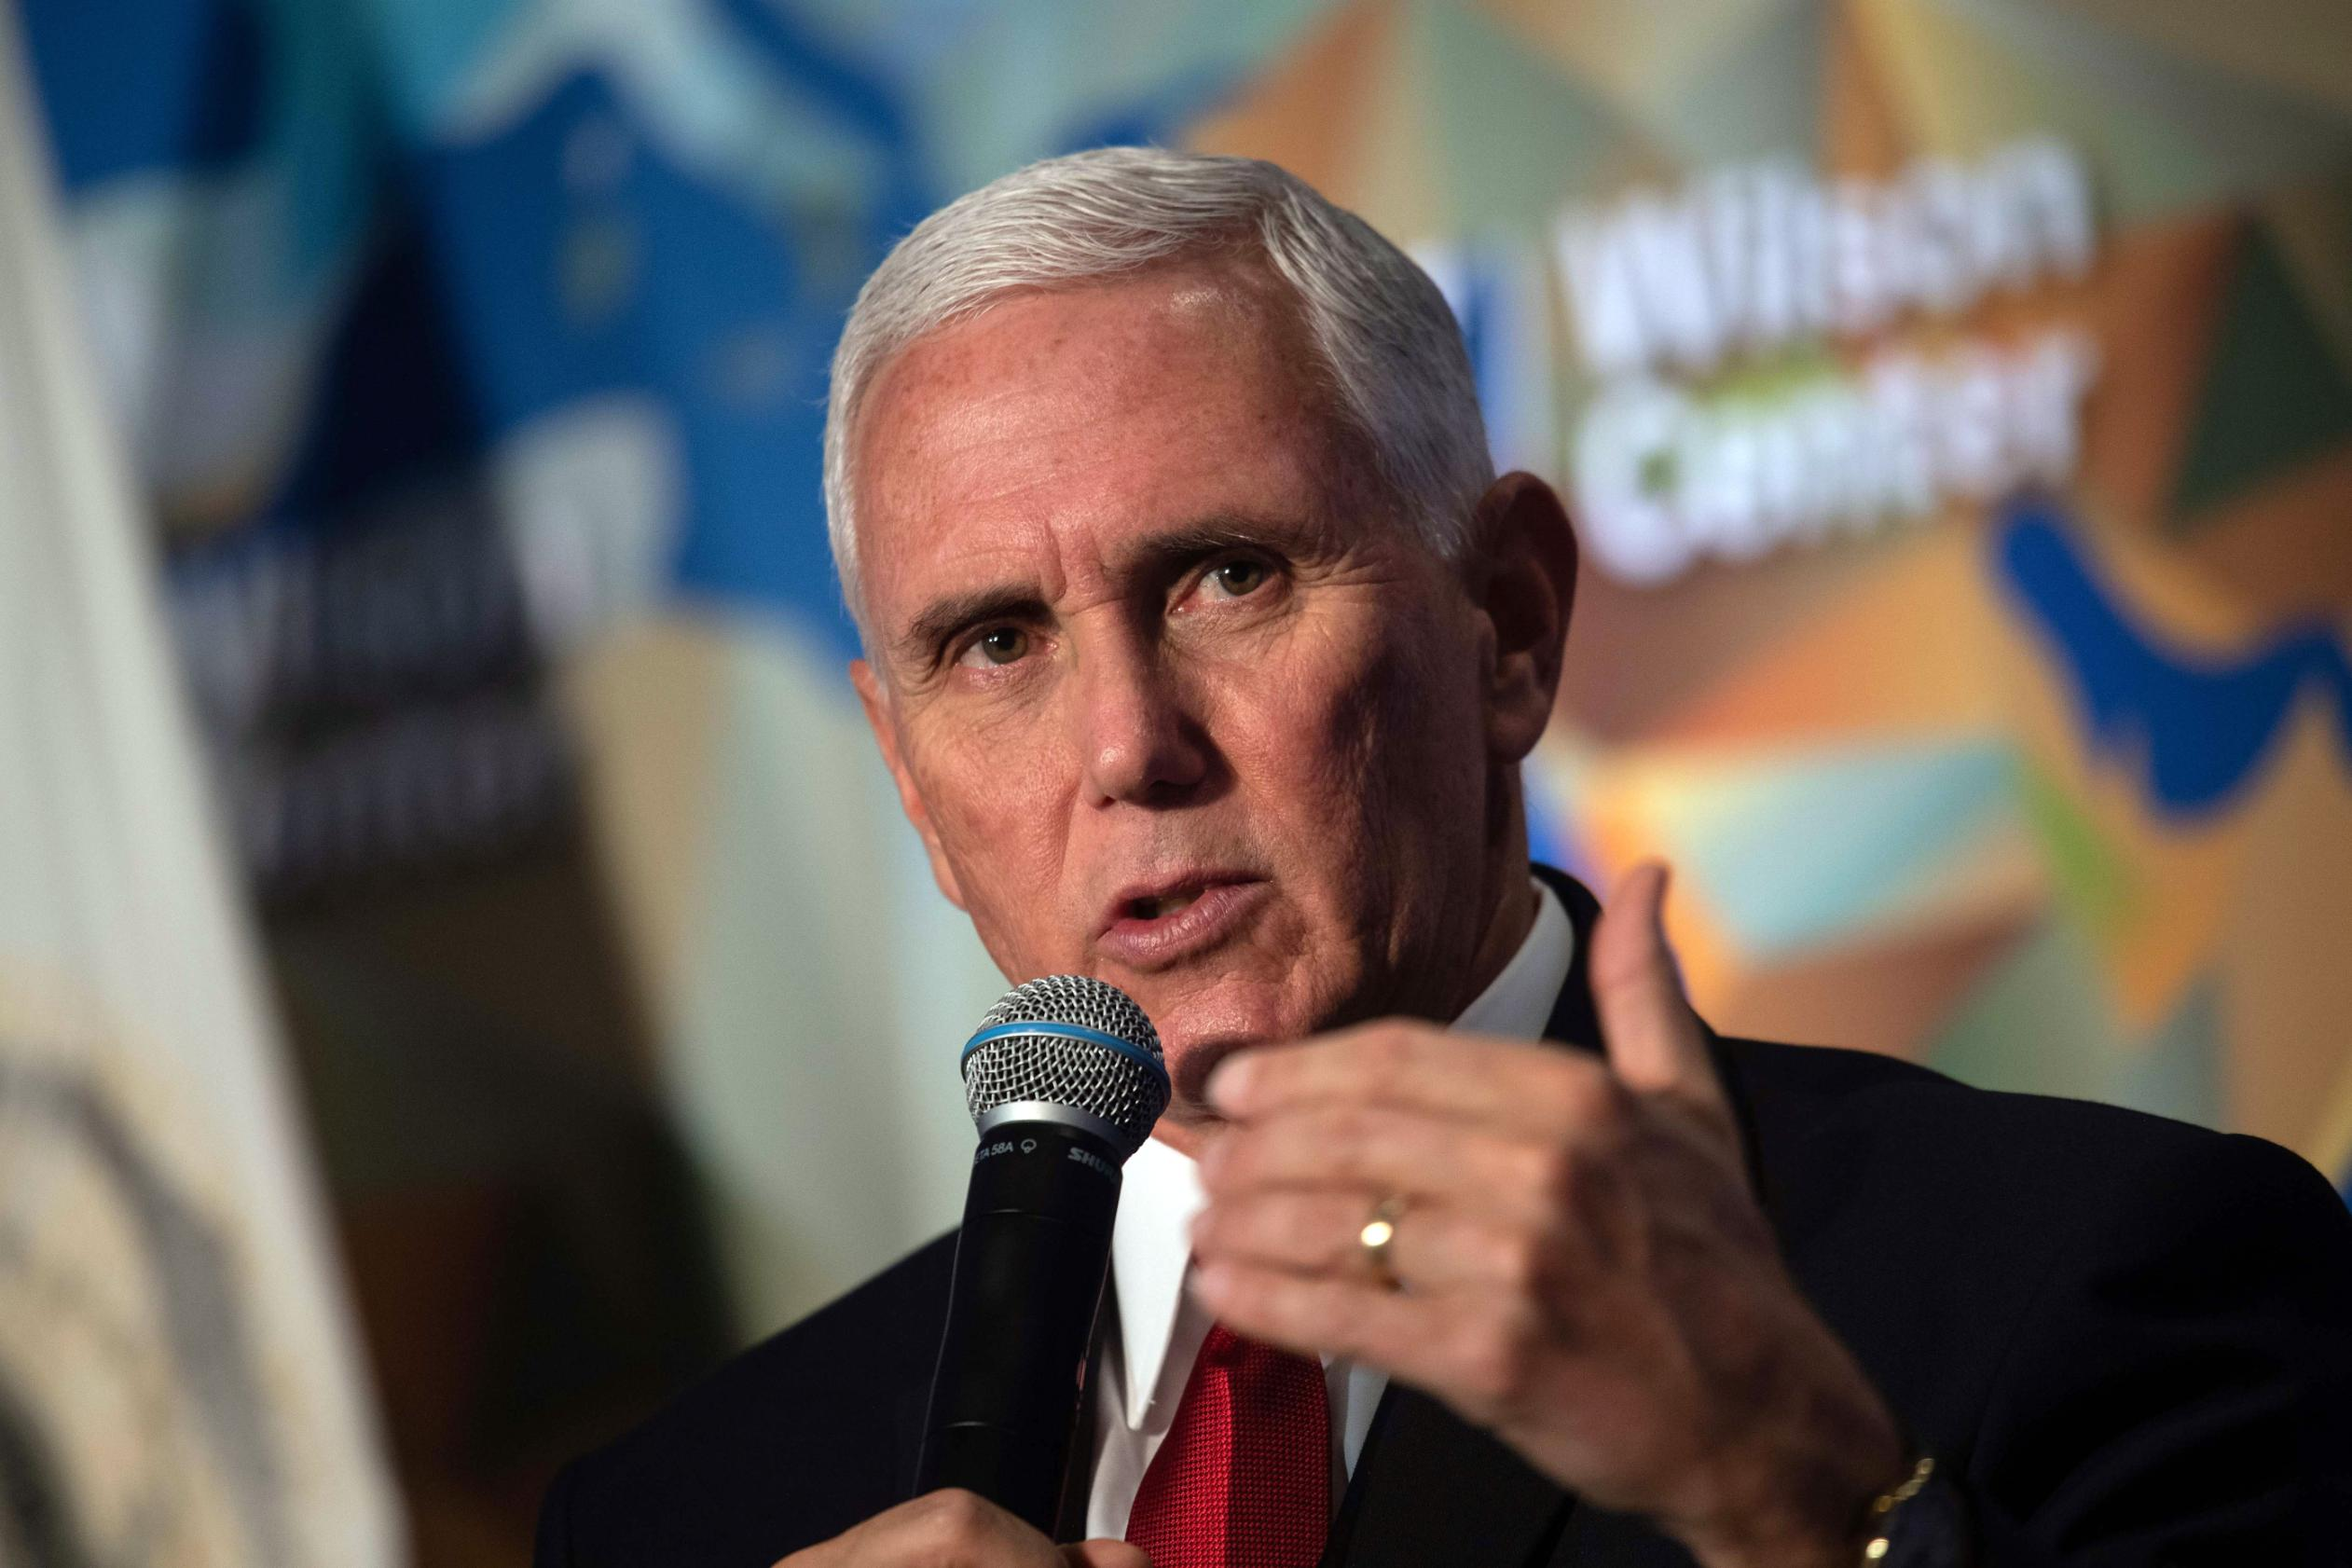 Pence says Chief Justice John Roberts has been a 'disappointment' to conservatives